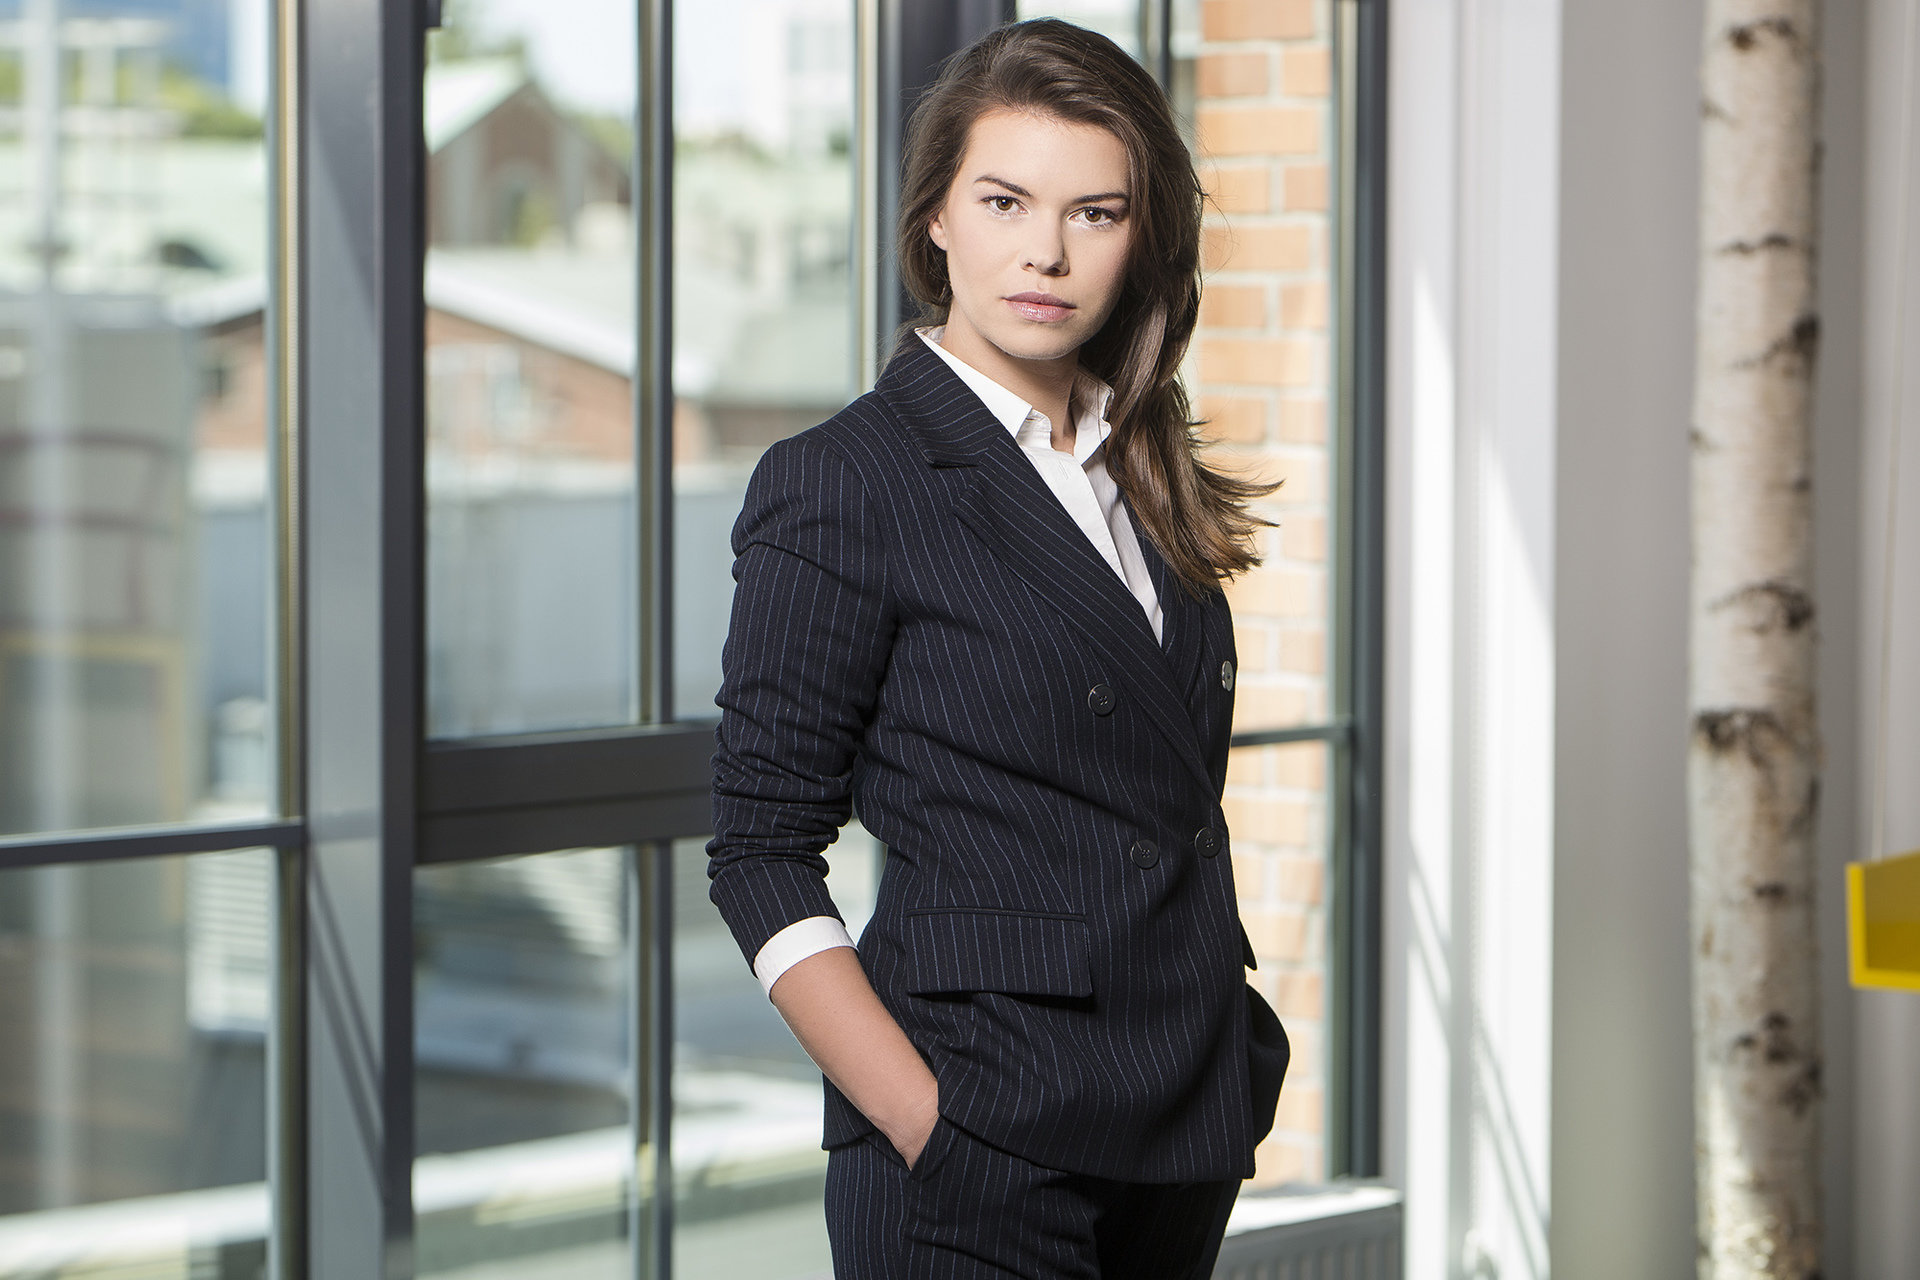 Weronika Ośko joins Deloitte Digital